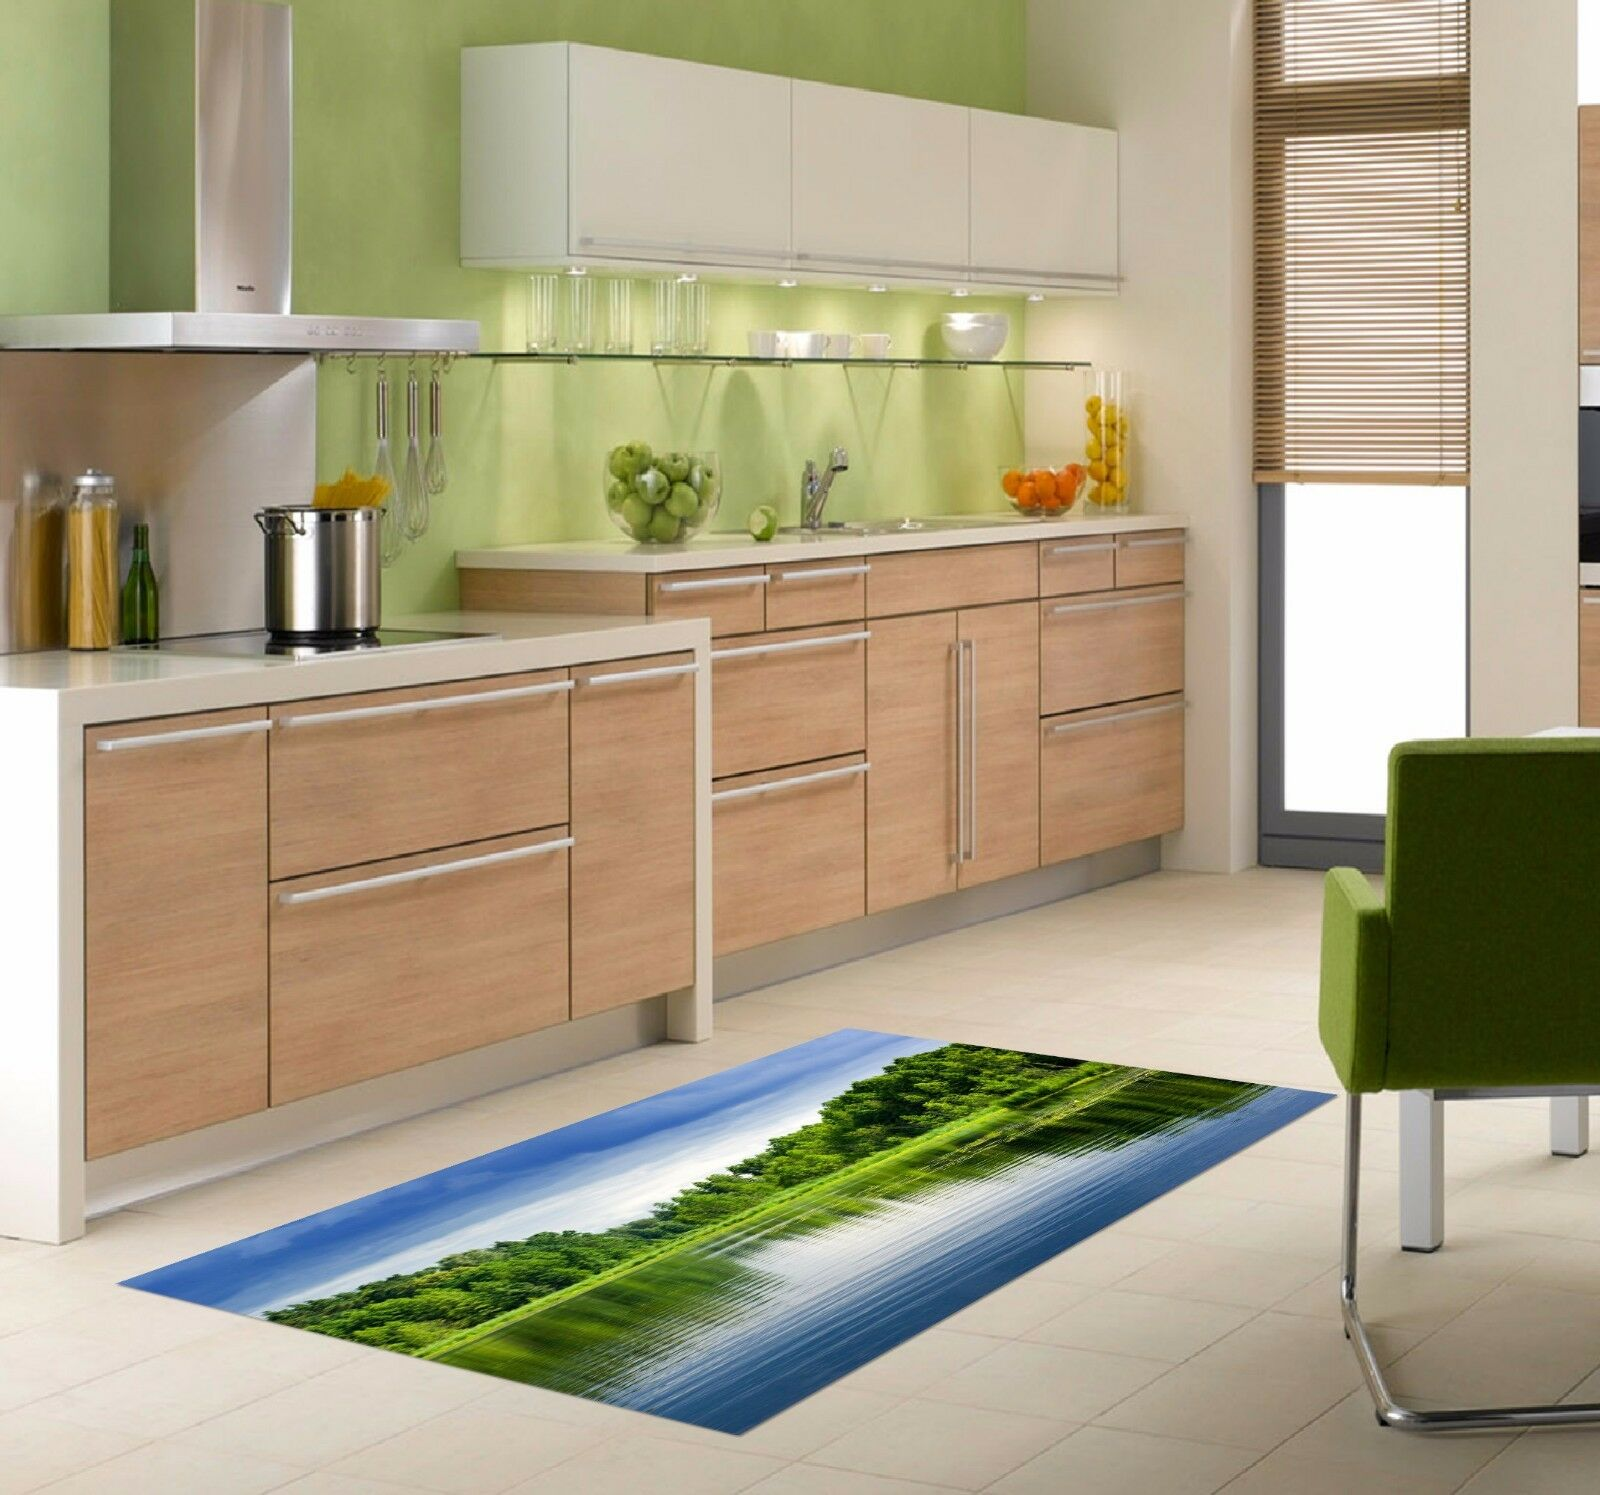 3D Jungle Water 75 Kitchen Mat Floor Murals Wall Print Wall AJ WALLPAPER AU Kyra